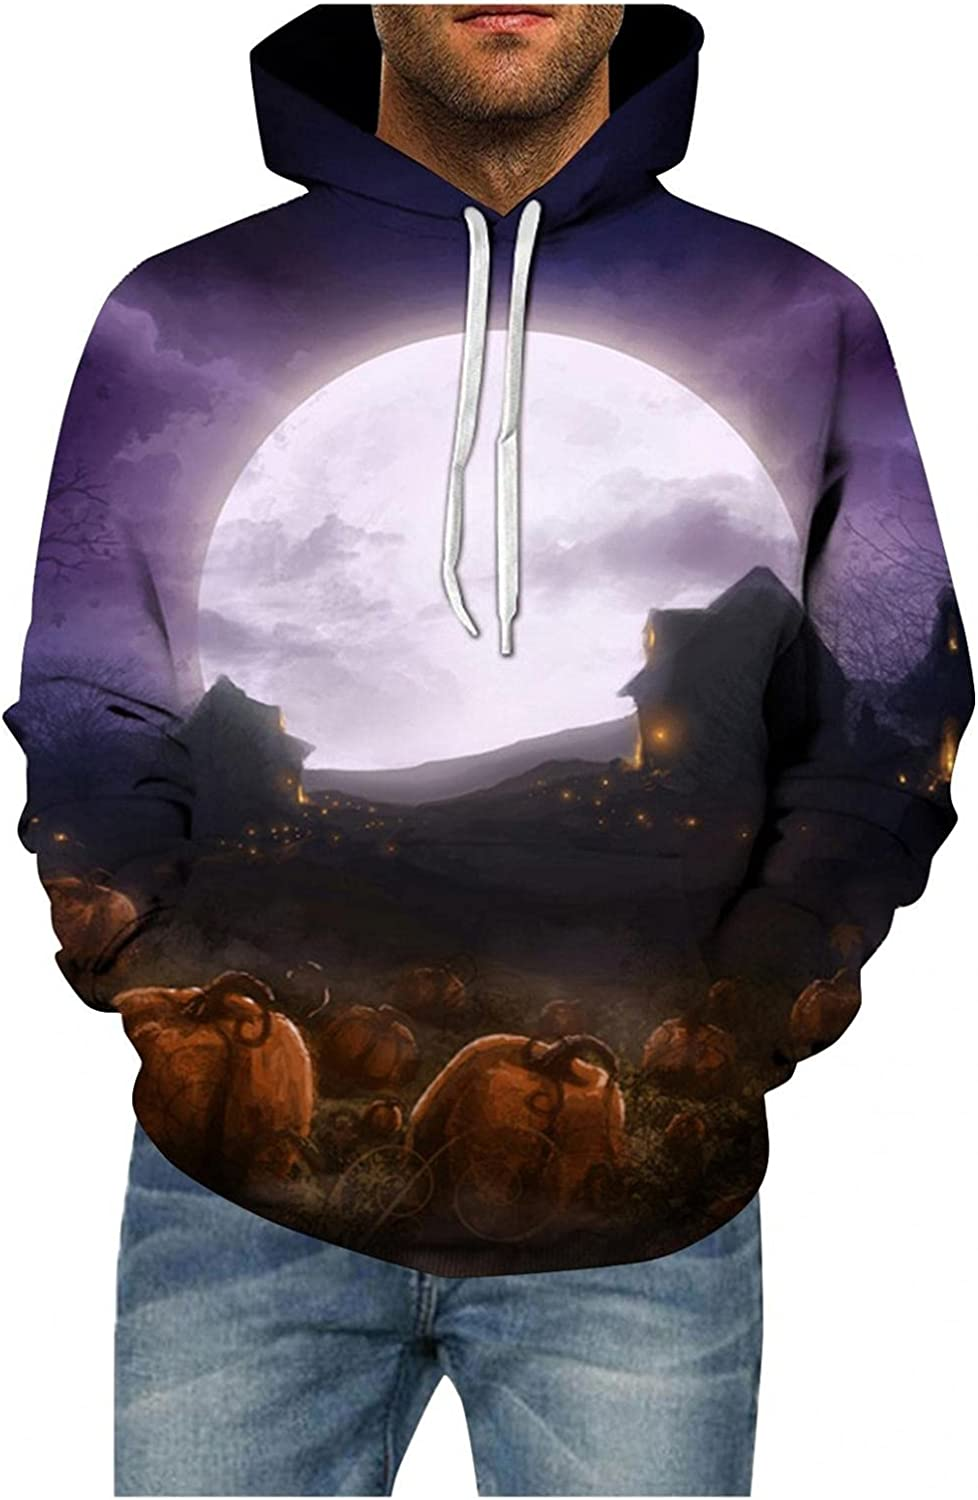 Aayomet Hoodies for Men Fashion Lightweight Pullover Hoodies Halloween Patterns Men and Women Hooded Tops T-Shirts